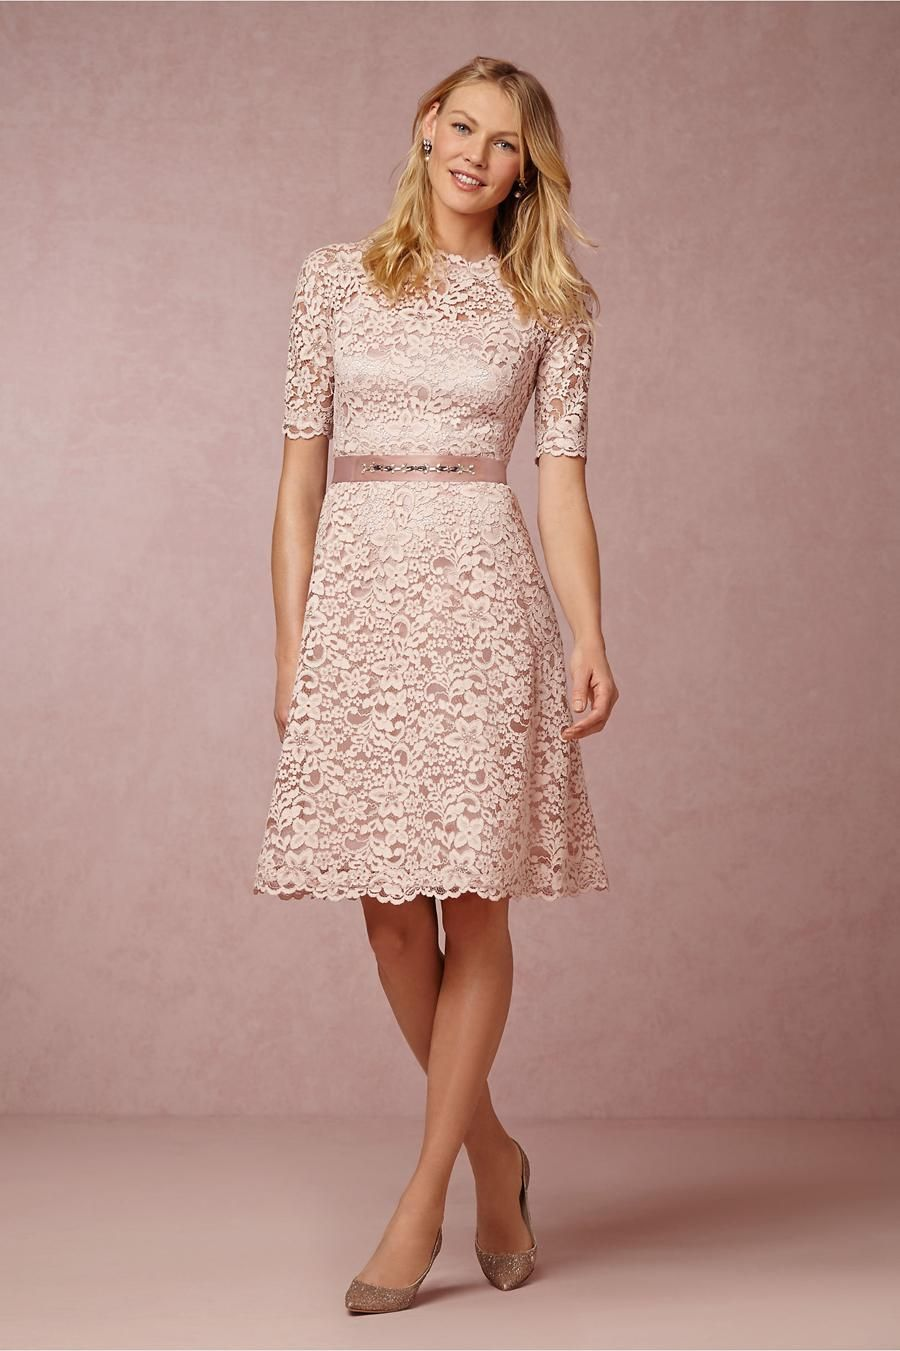 Blush Pink Knee Length Dress